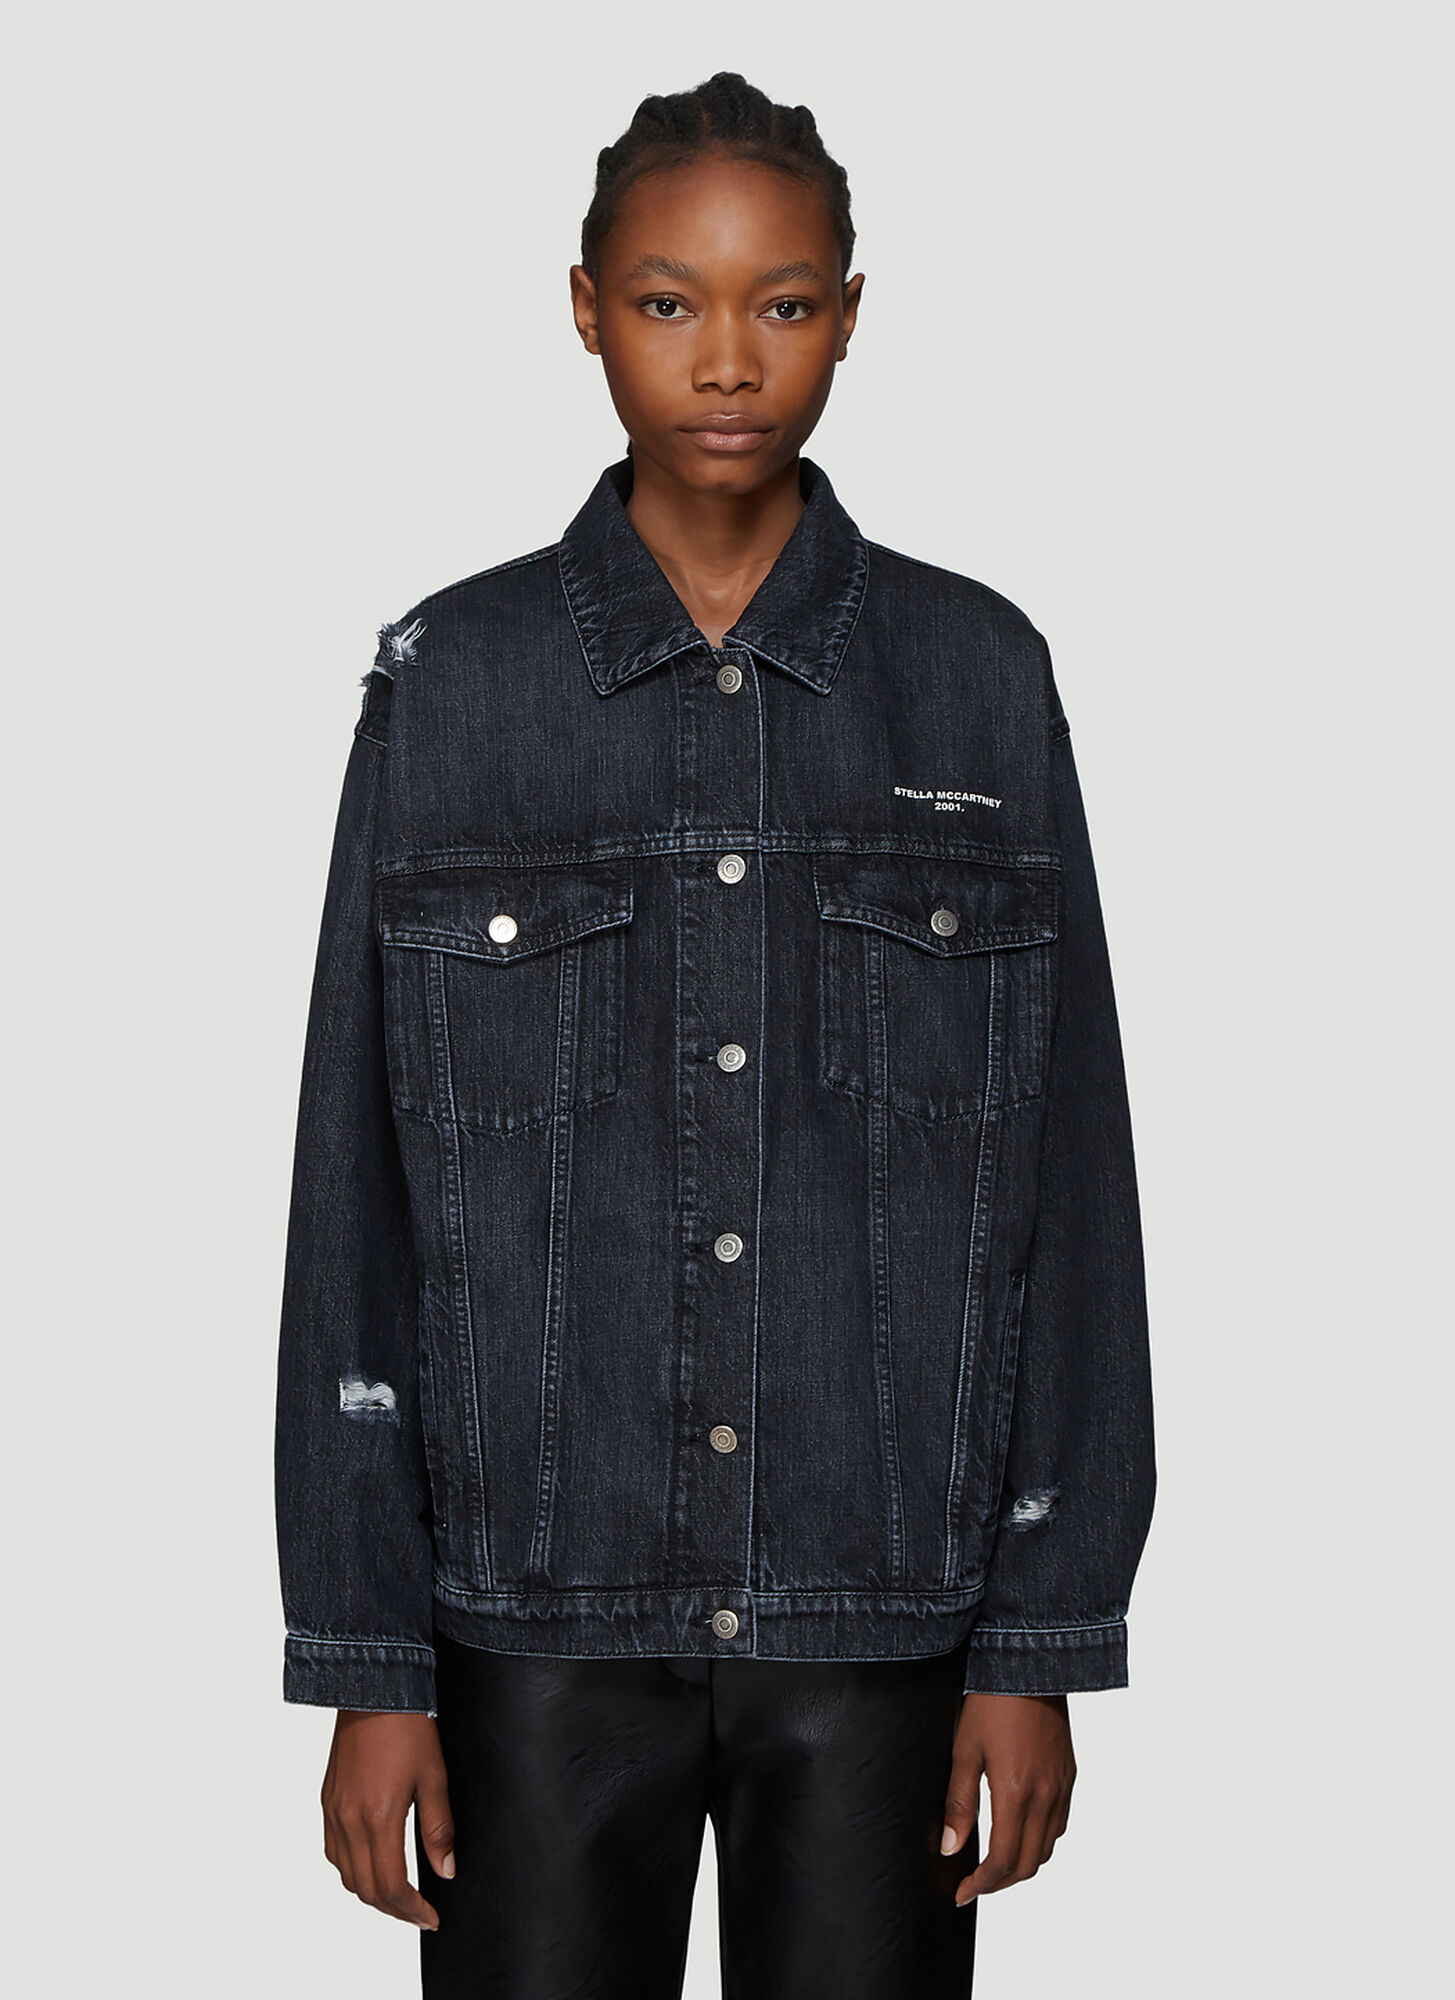 Stella McCartney Distressed Denim Jacket in Blue